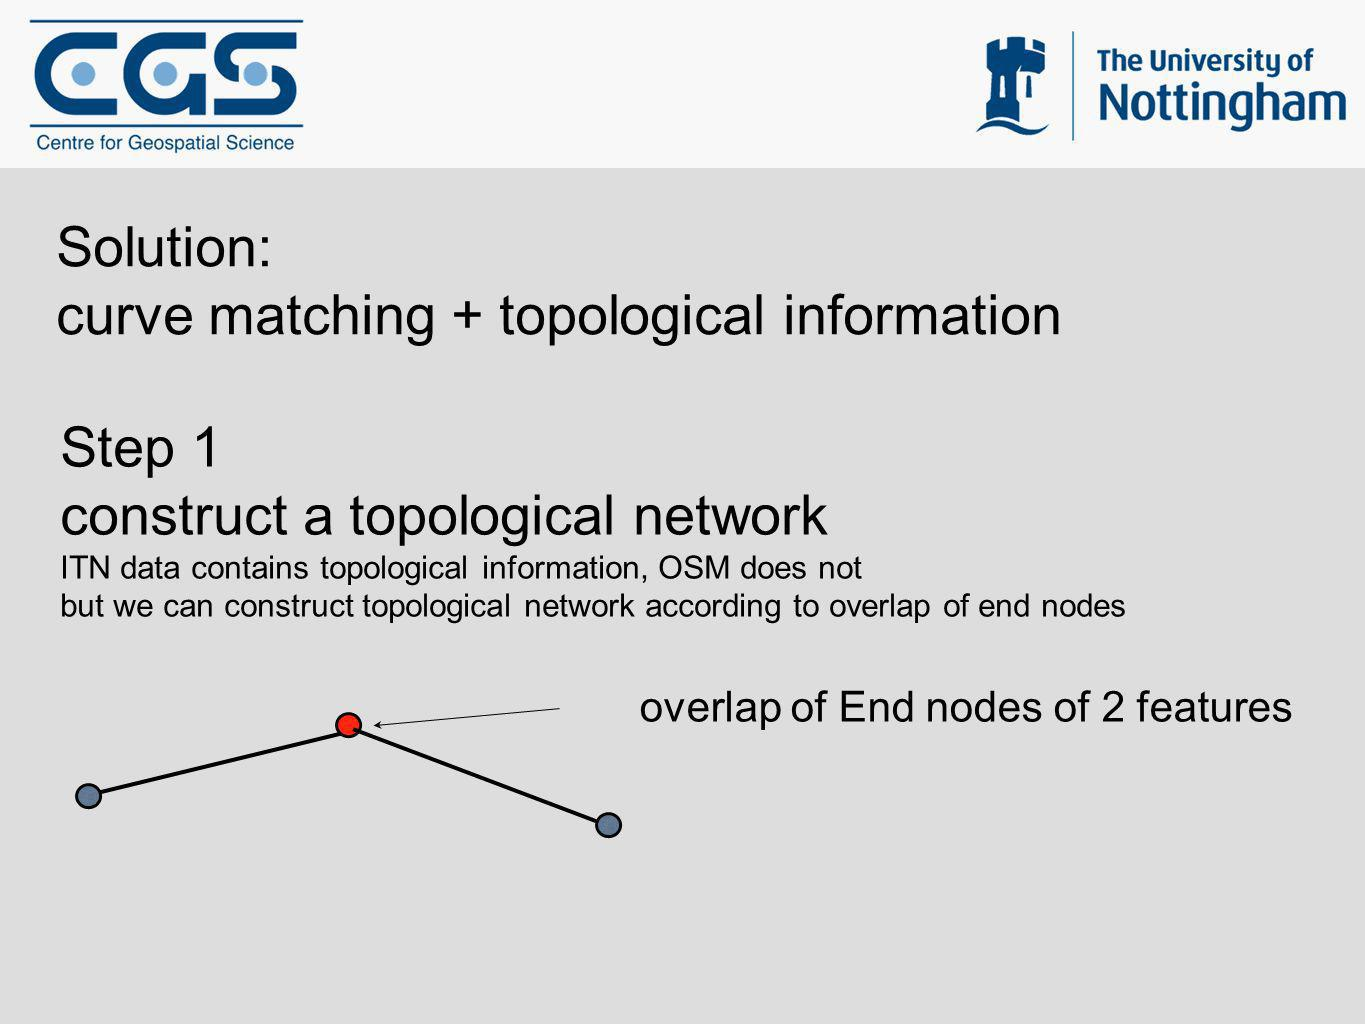 overlap of End nodes of 2 features